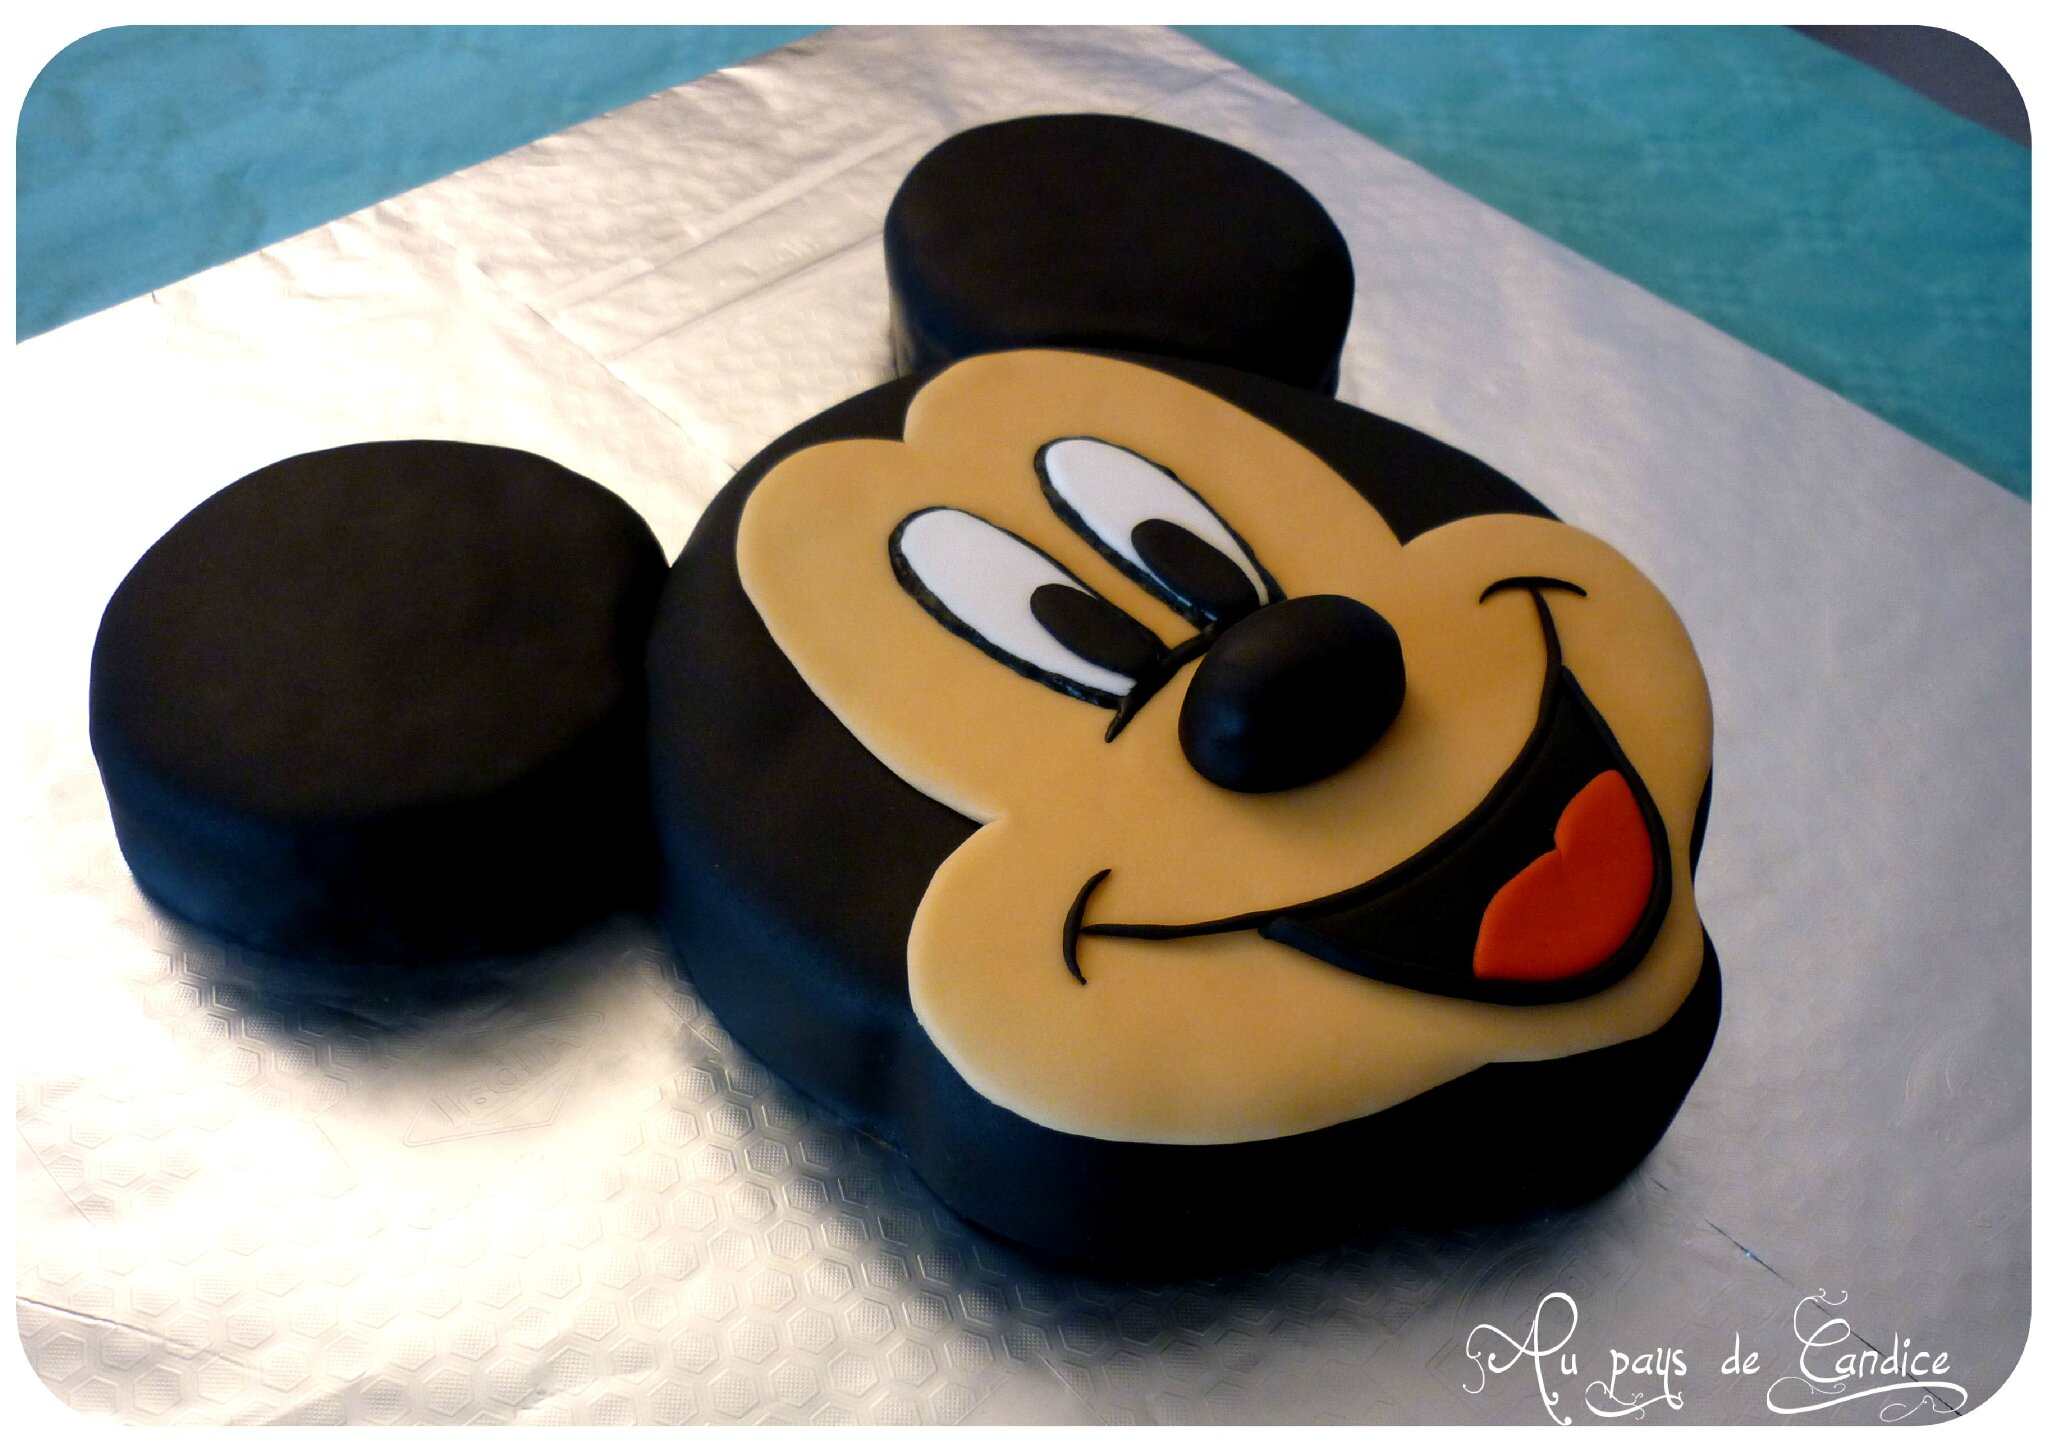 Mickey pisode in dit au pays de candice - Gateau mickey facile ...